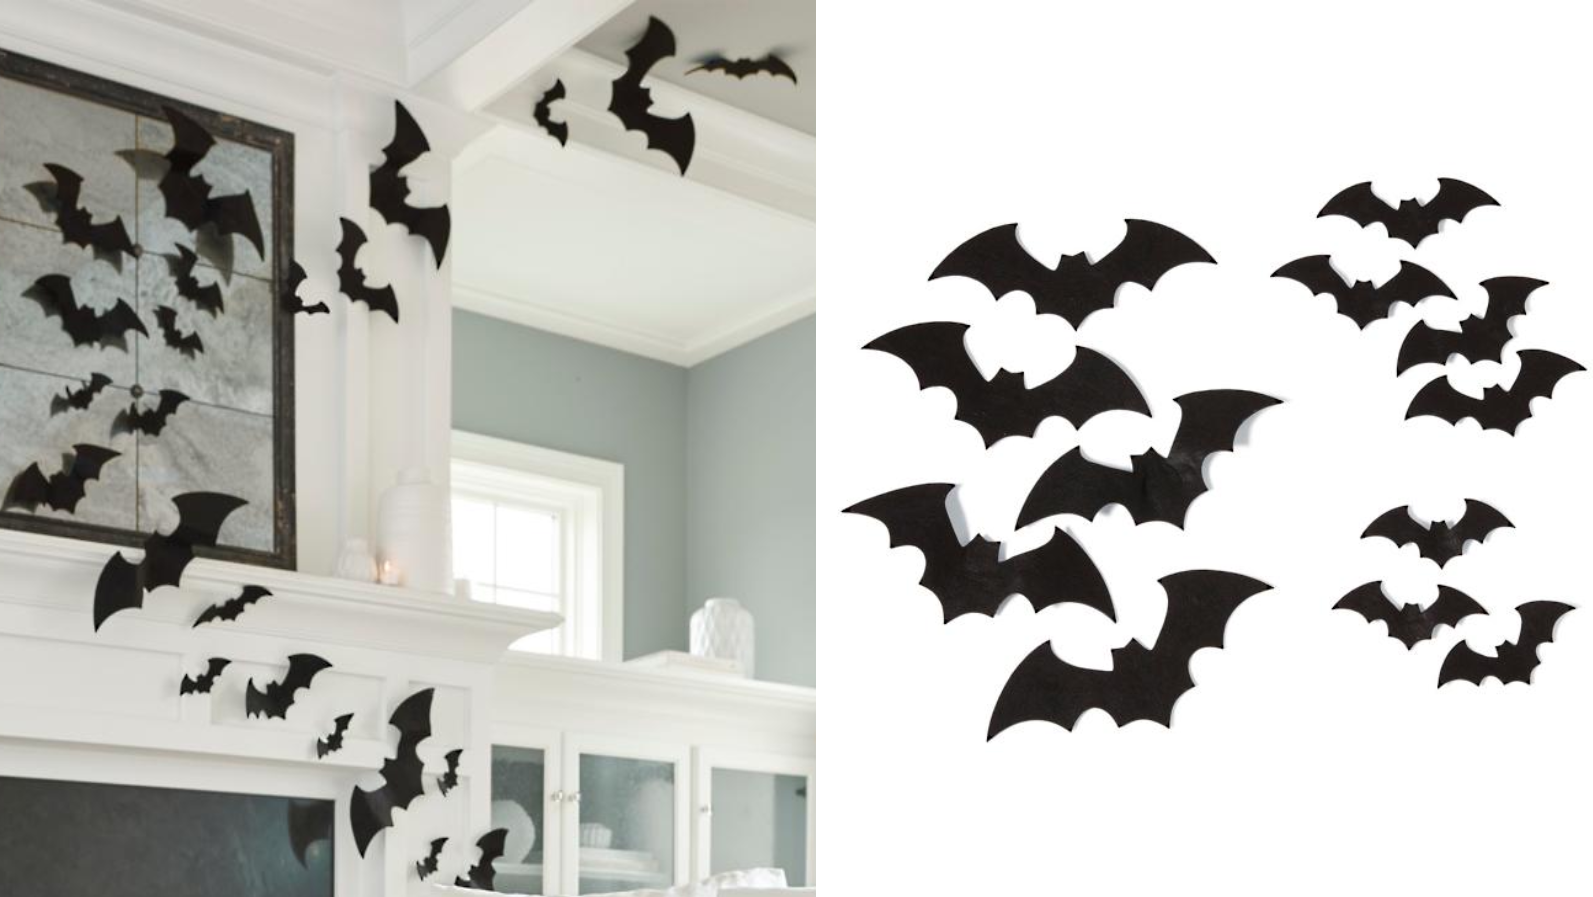 Arrange these flying frights however you'd like throughout your house.